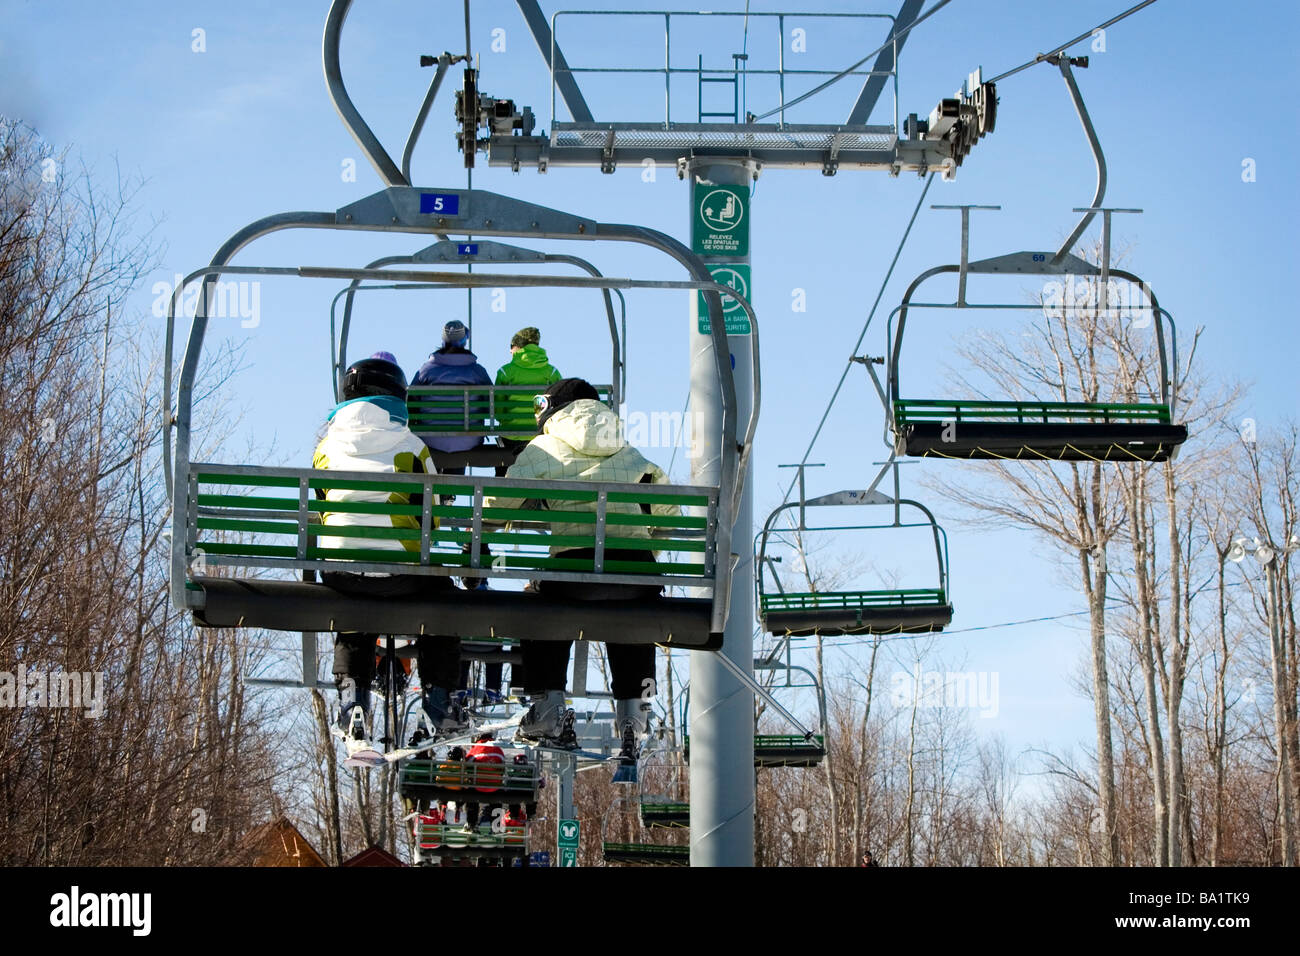 People on chairlift on there way up the mountain - Stock Image